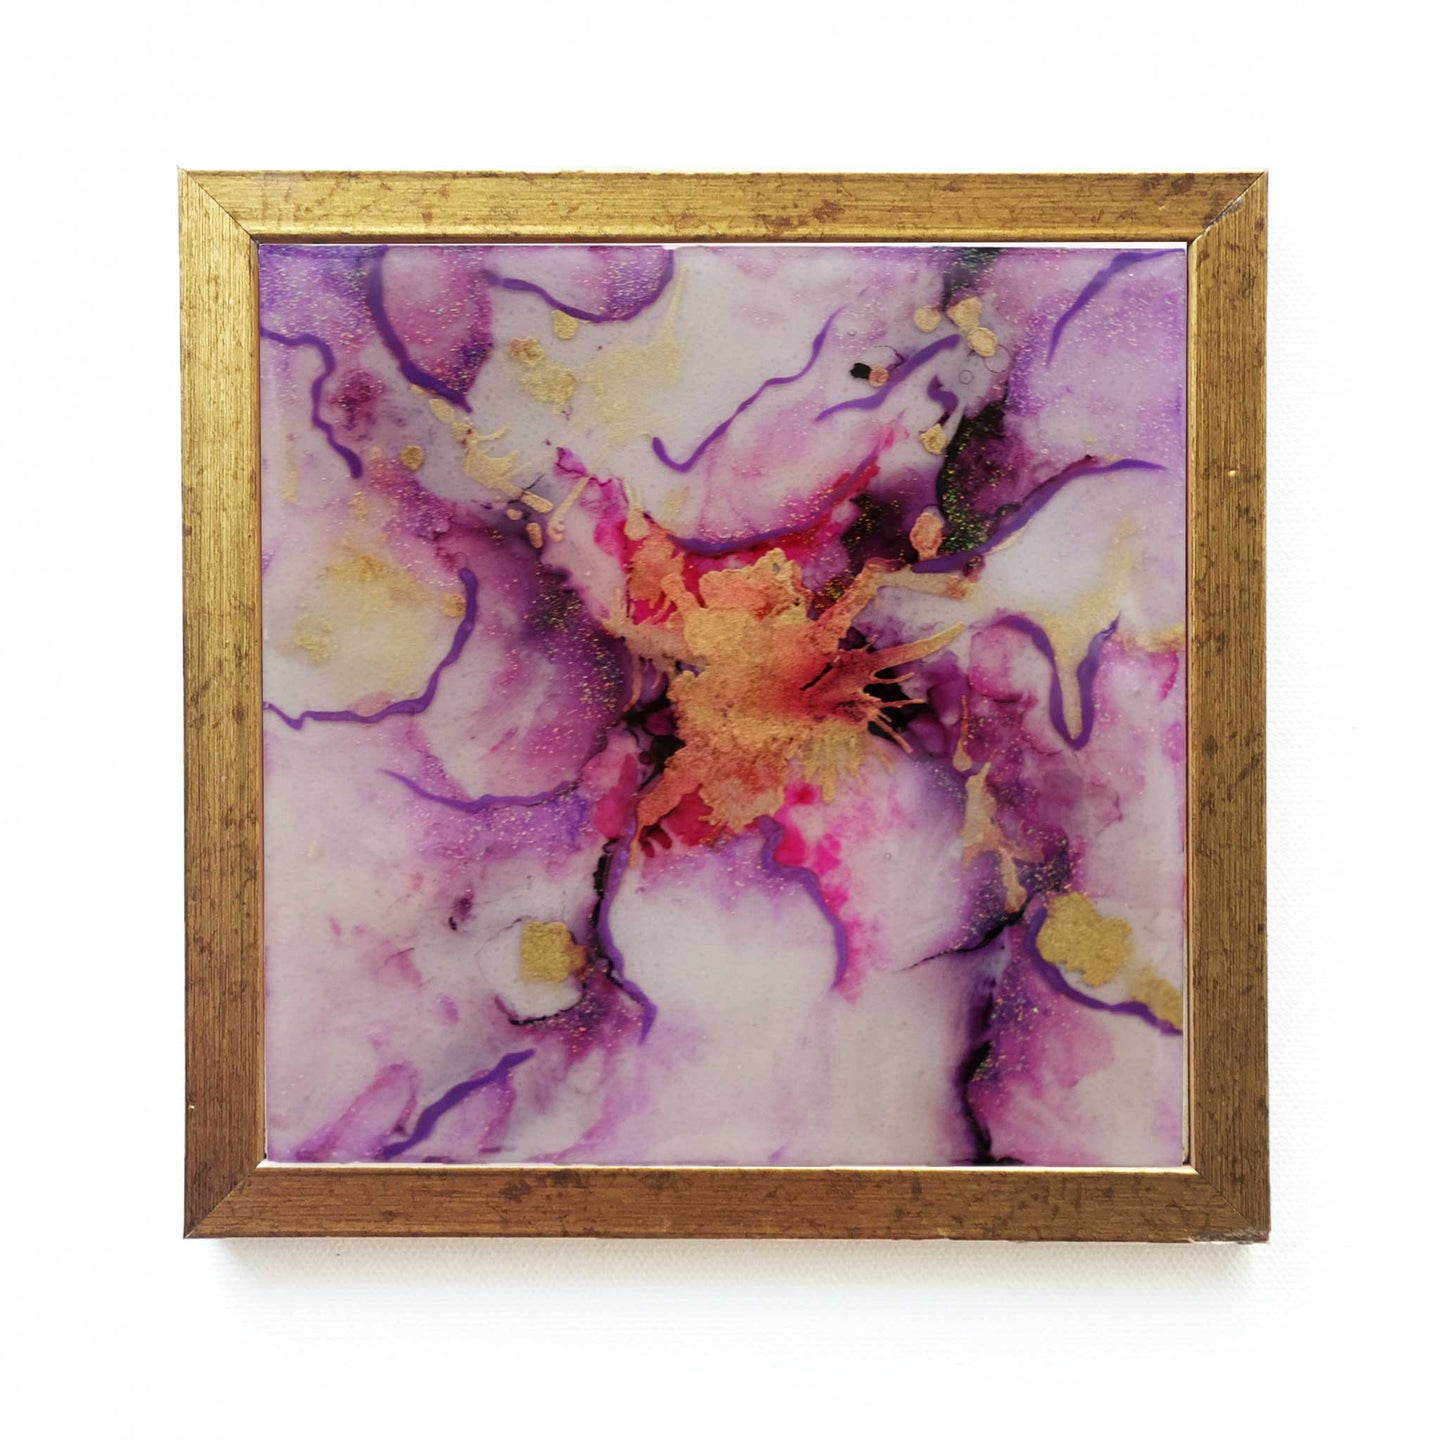 Periwinkle - Original Handpainted Ceramic Wallart